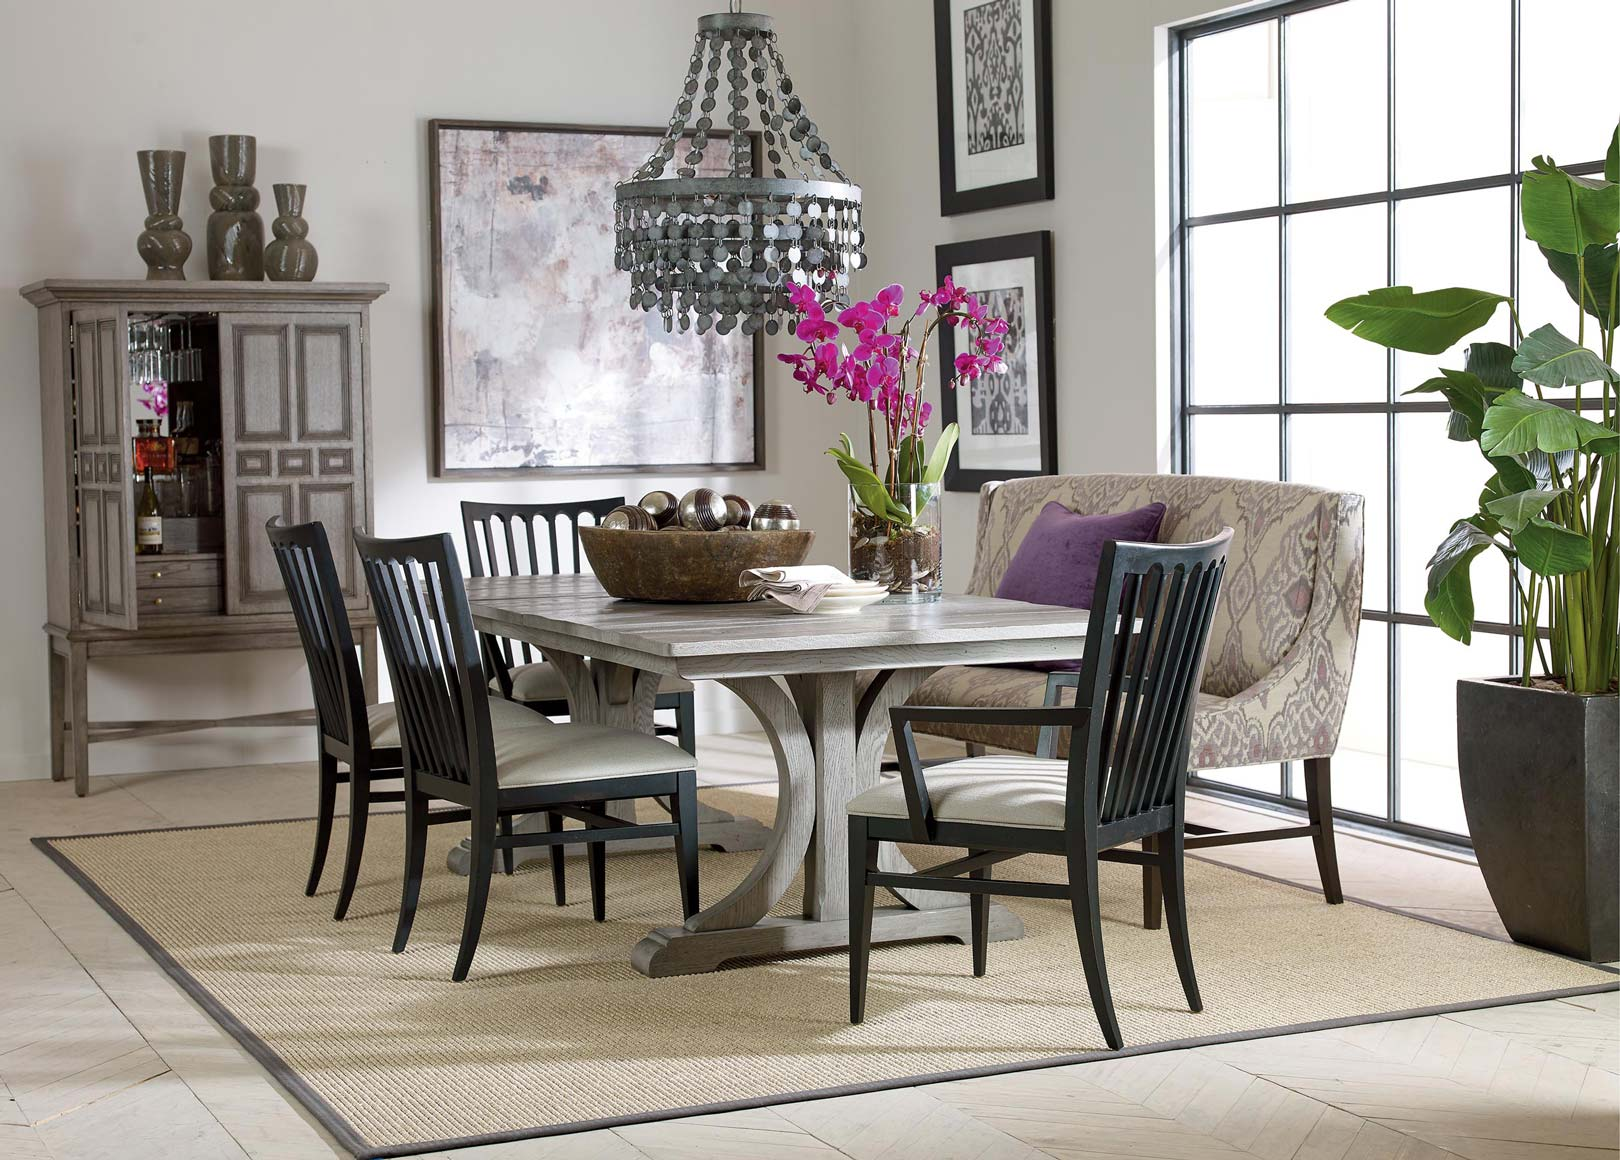 Mixed Menu Dining Room Main Image Ethan Allen